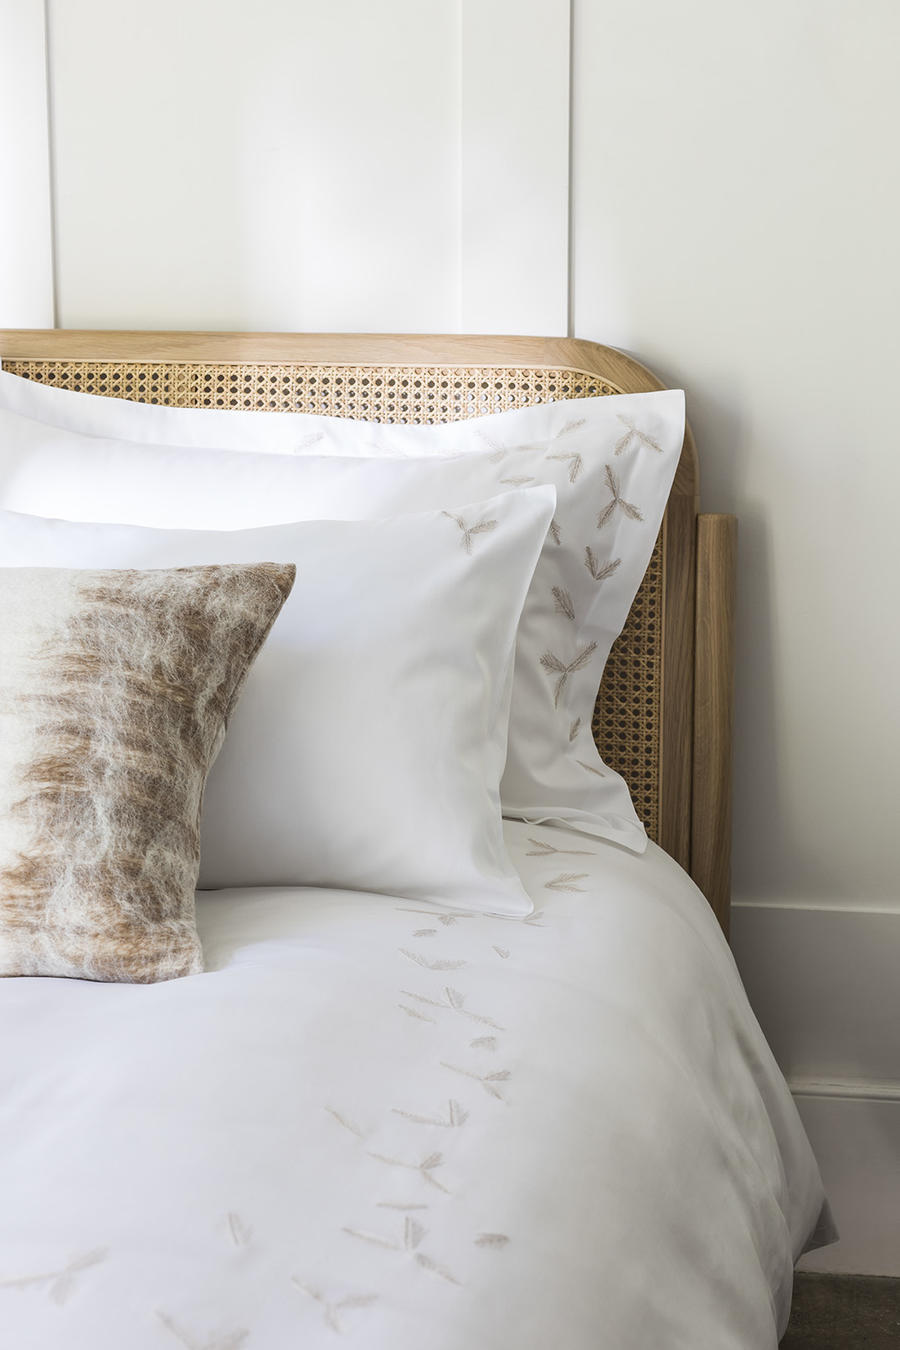 Pillows and bedding from Baea's debut line